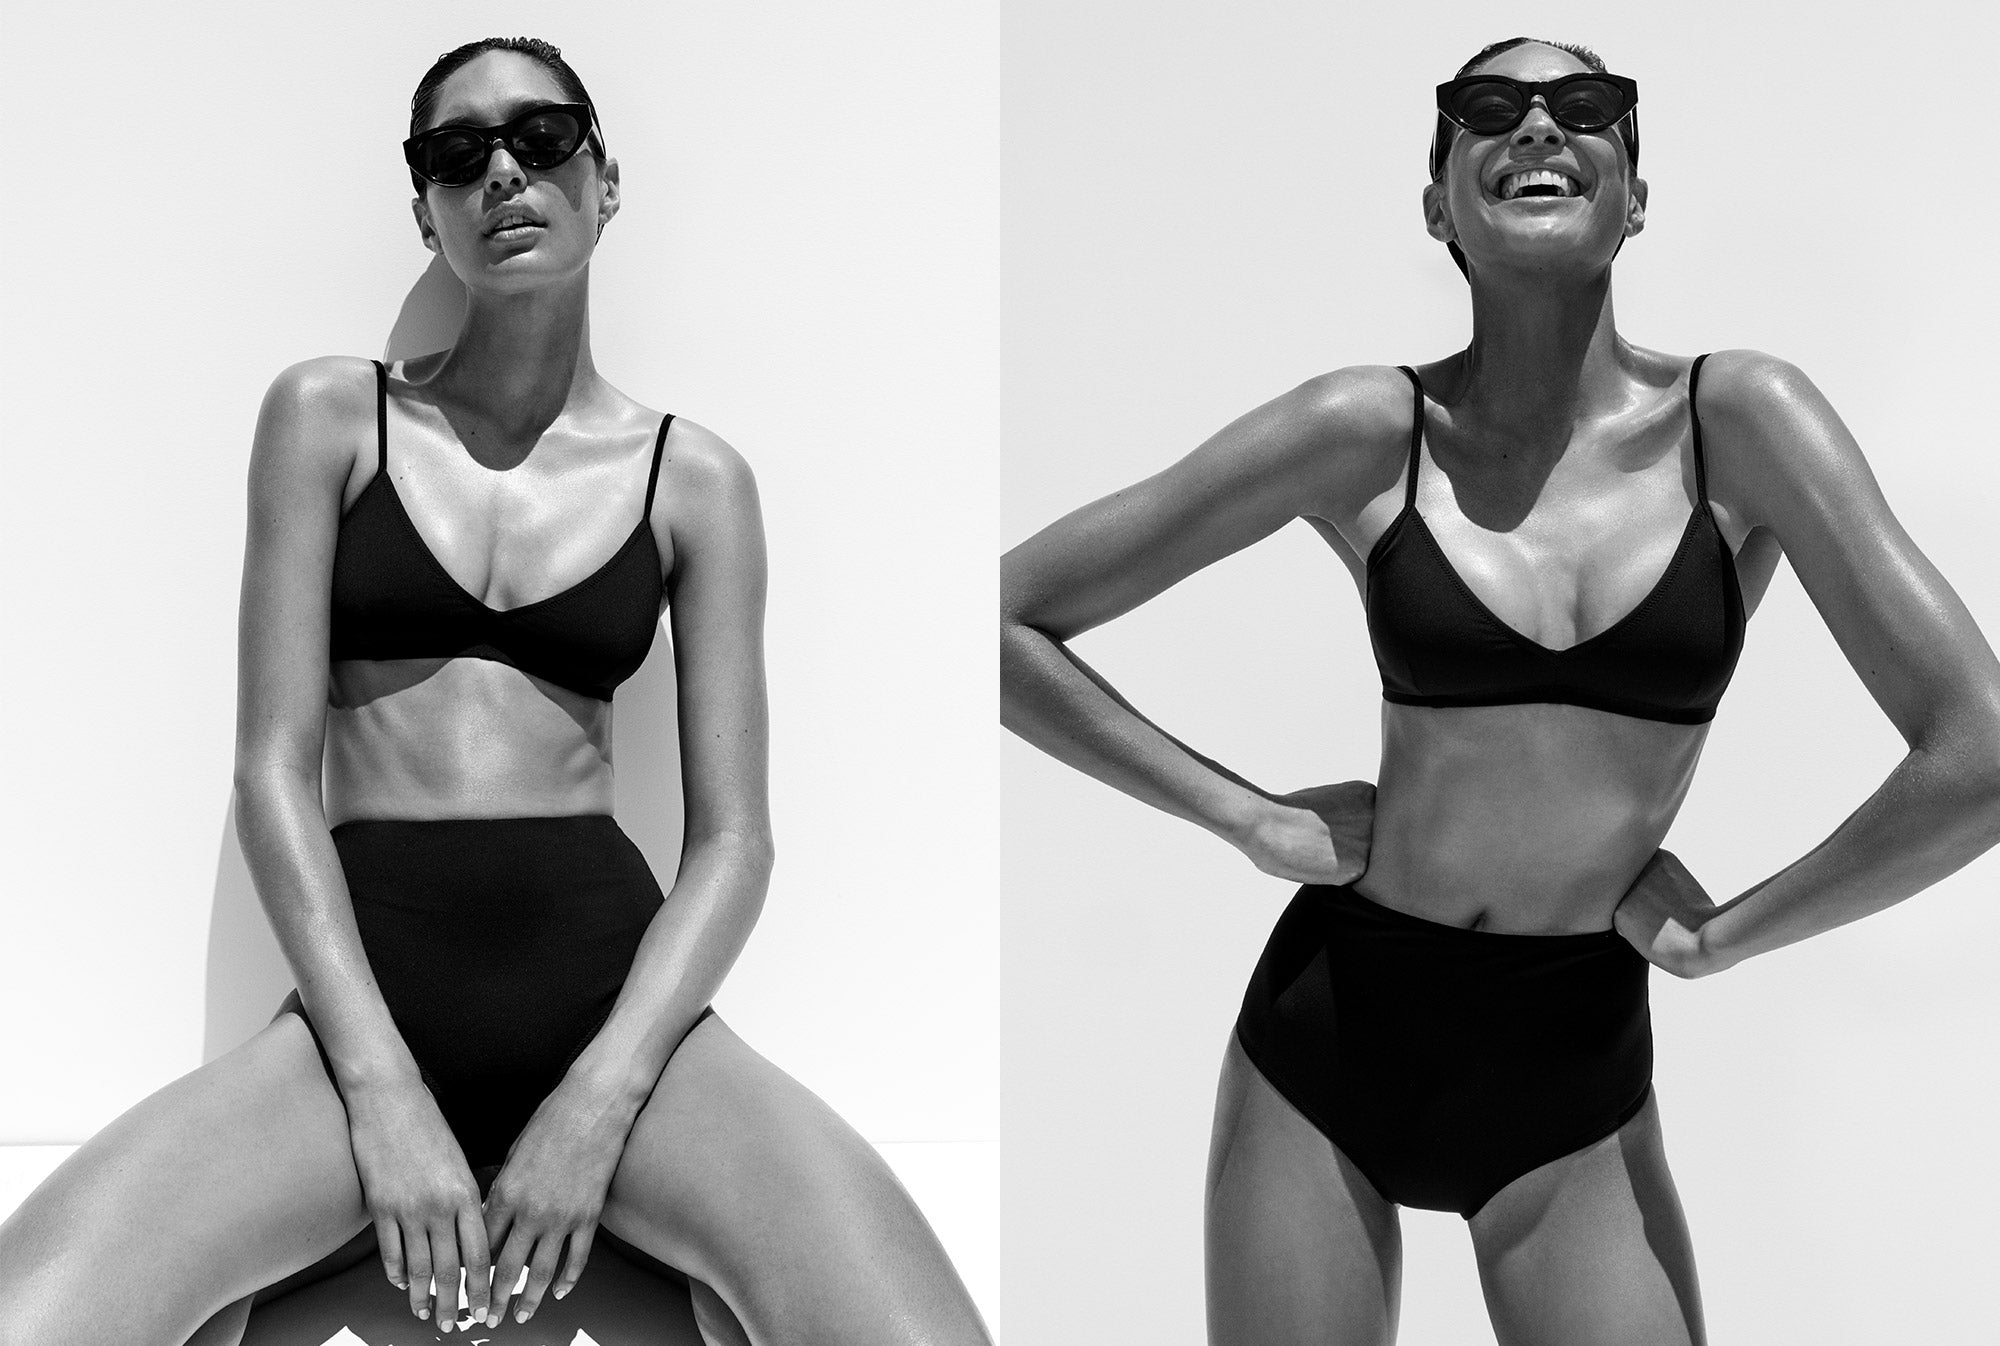 ScanlanTheodore_Summer19_Campaign_Swim_Image6